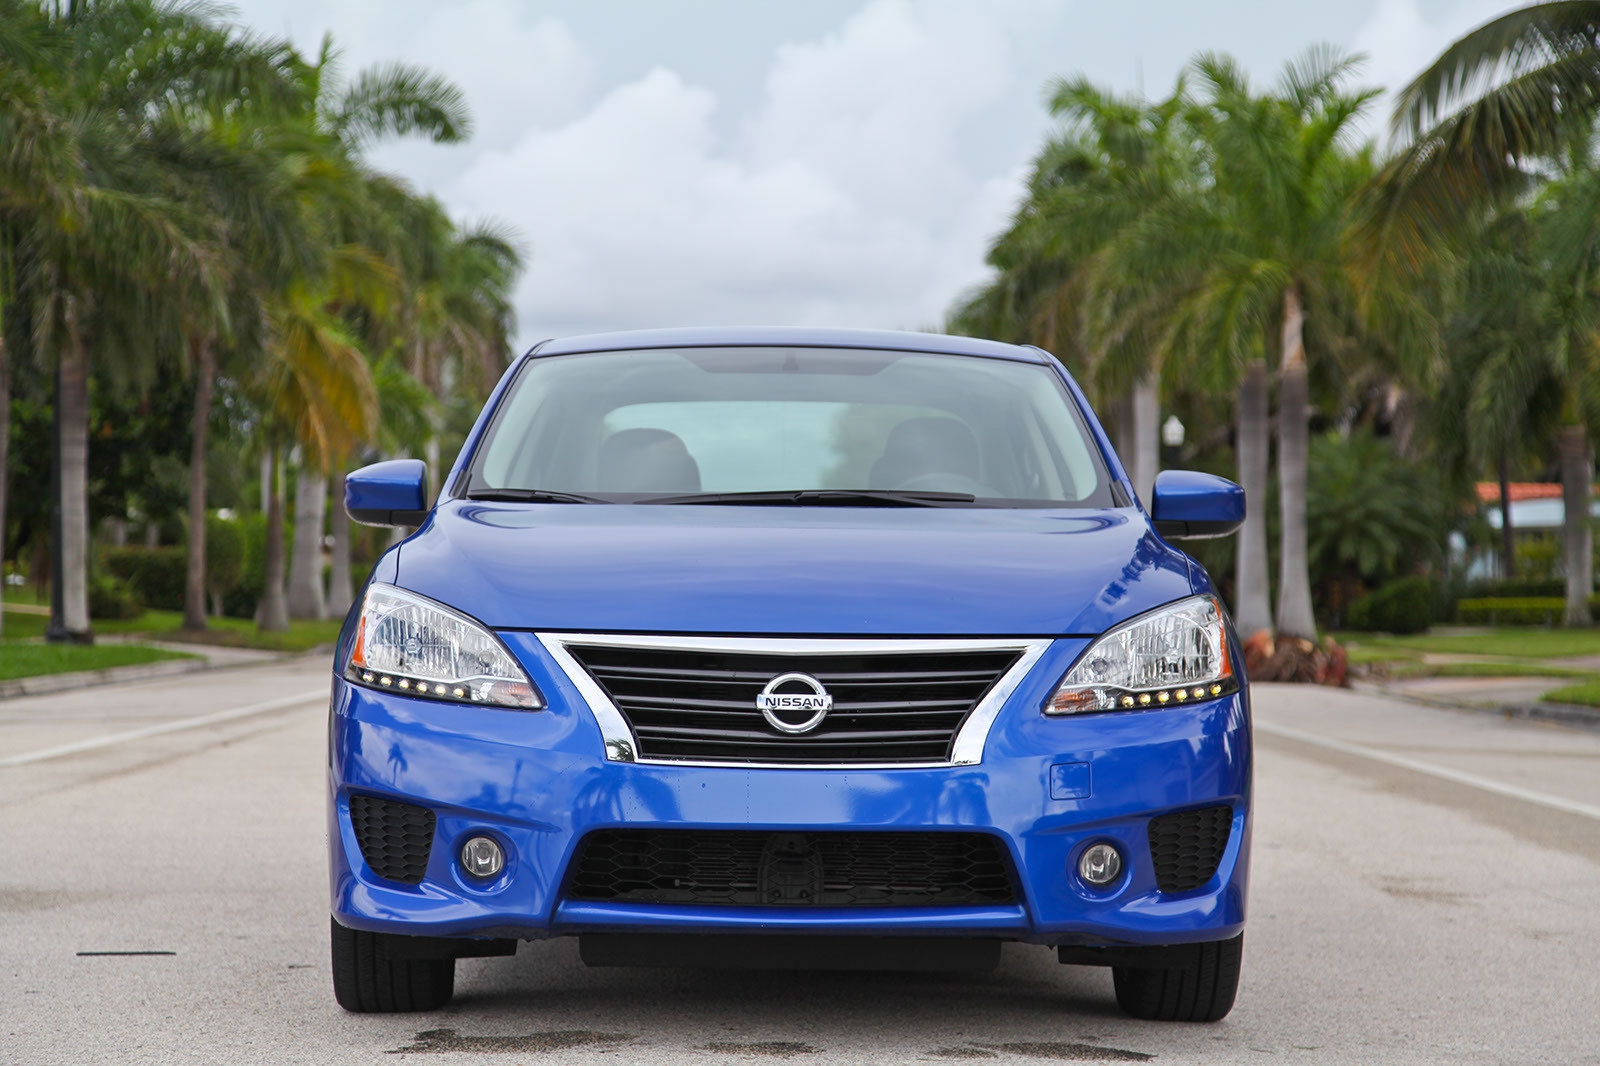 2014 nissan sentra sr picture 524530 car review top speed. Black Bedroom Furniture Sets. Home Design Ideas